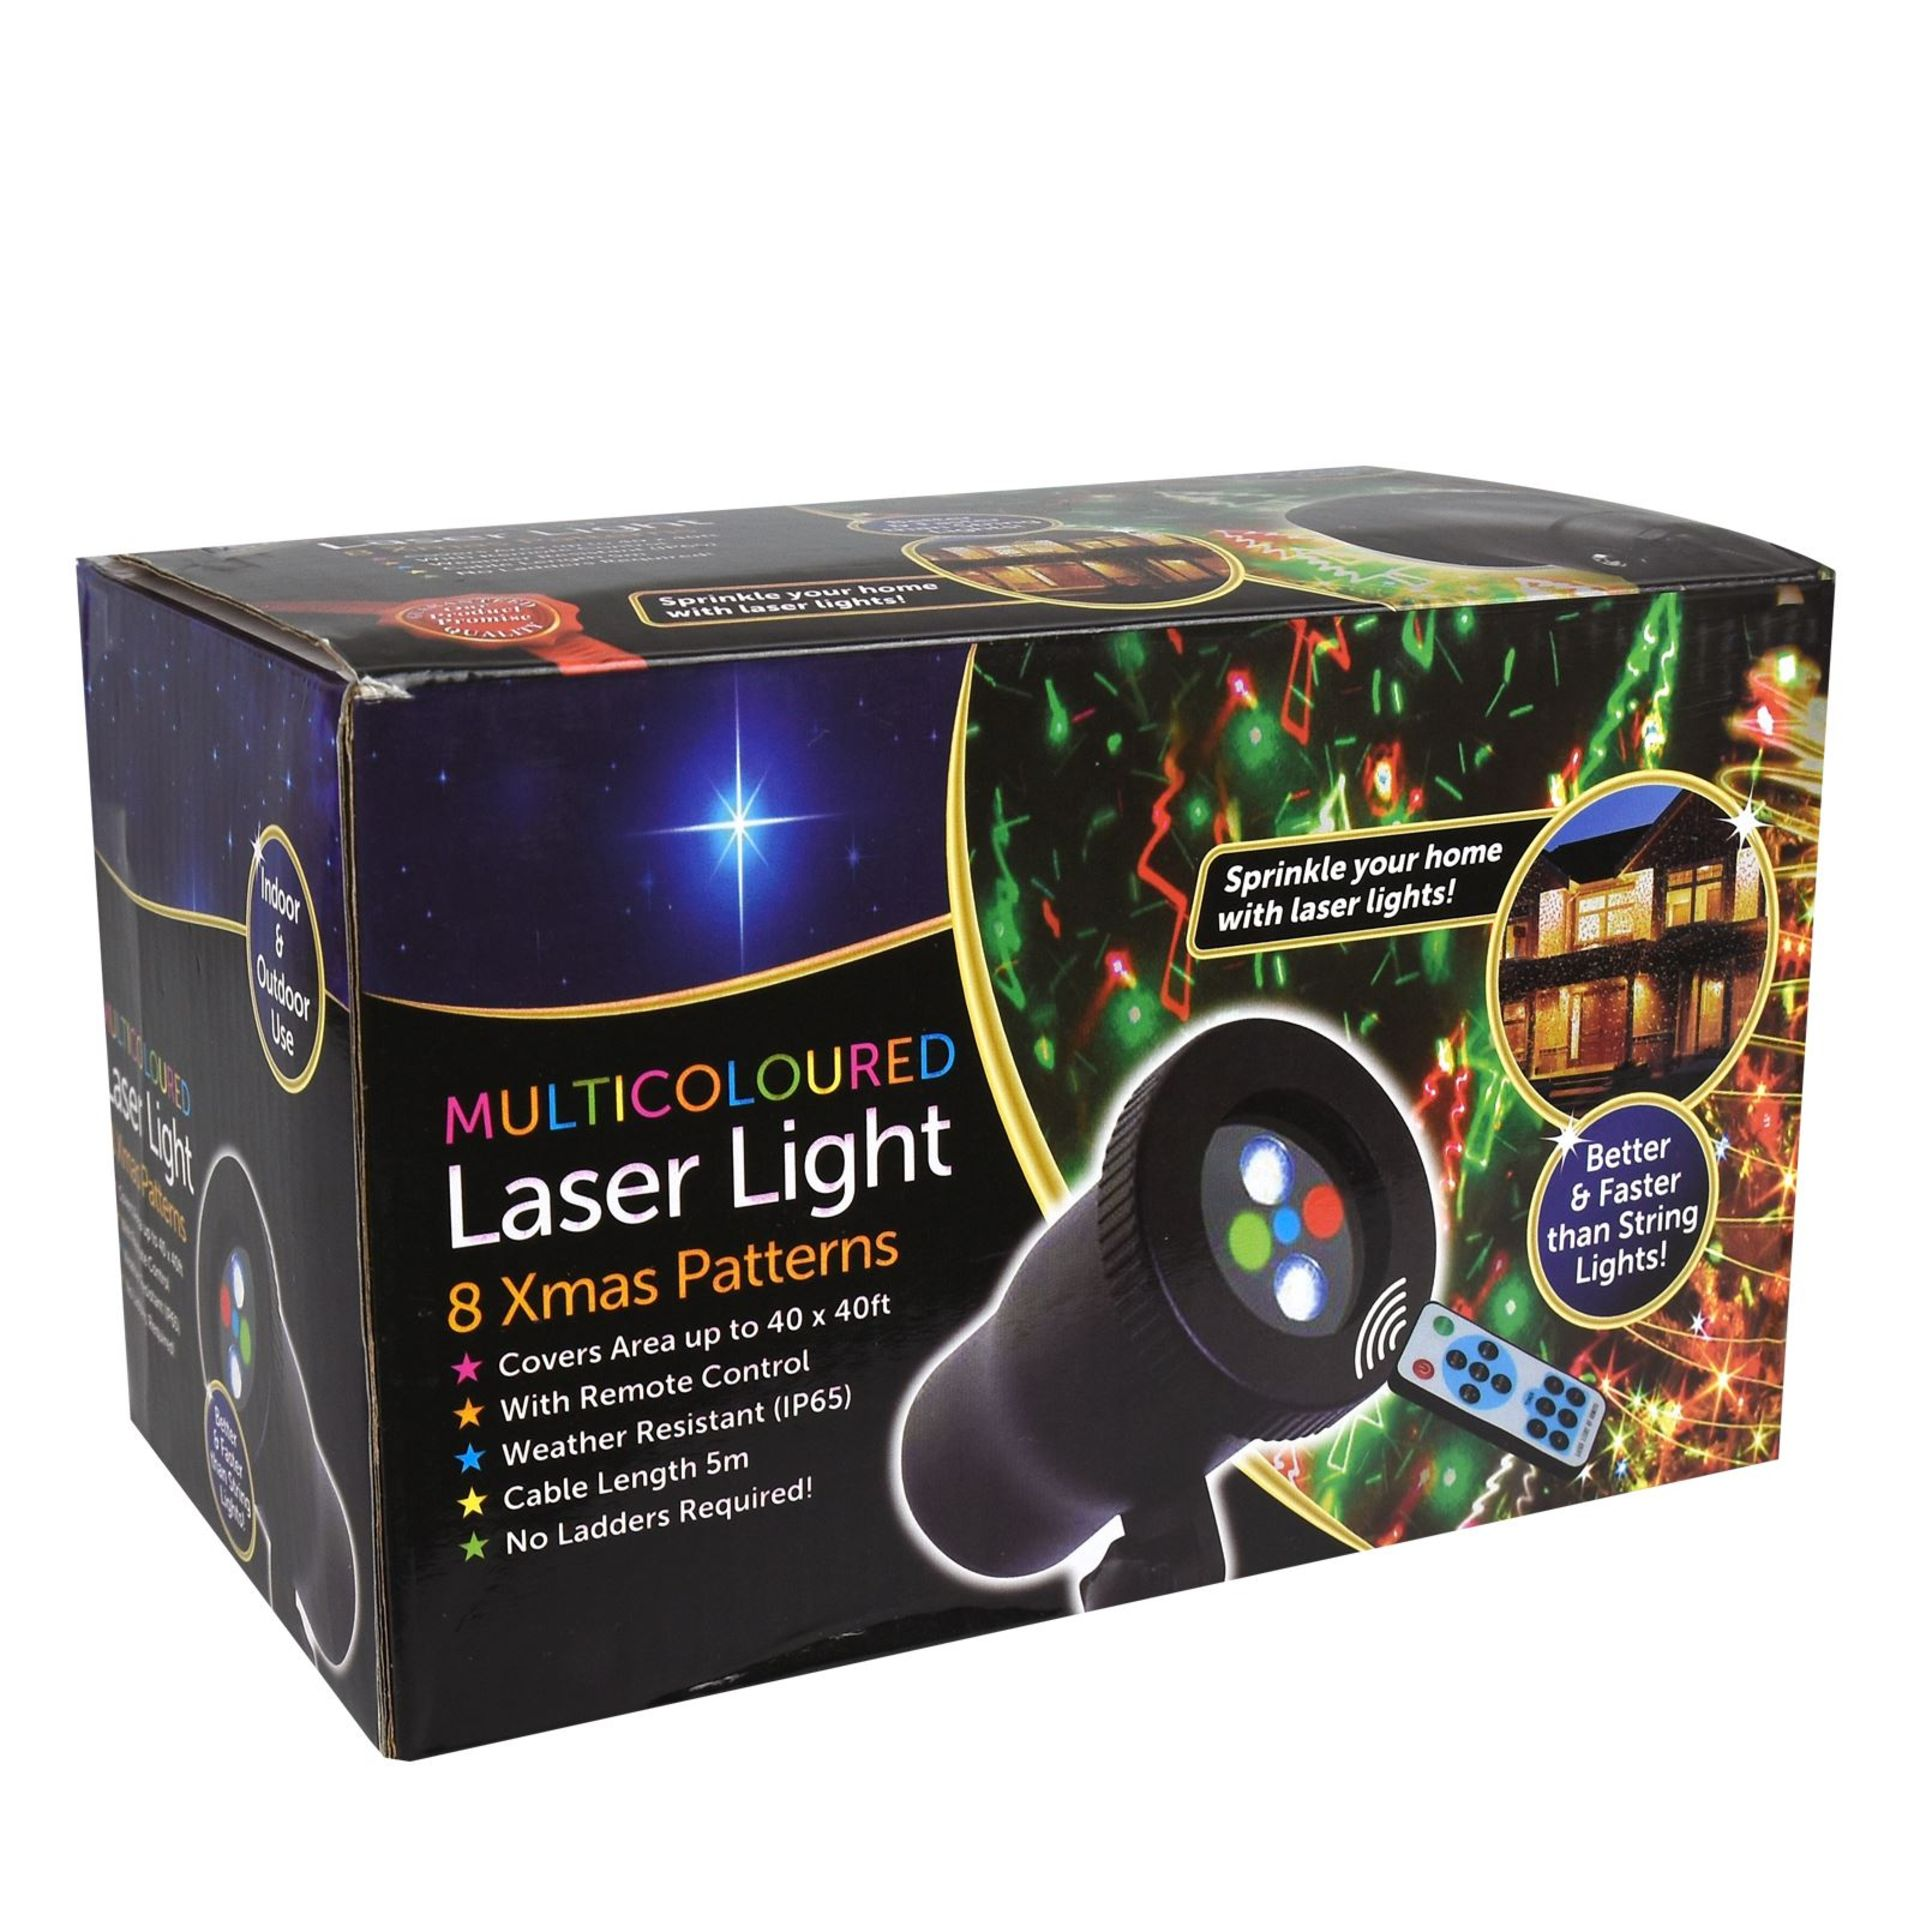 Lot 18018 - V Brand New Multicoloured 8 Christmas Pattern Laser Light - Covers Area Up To 40 x 40ft - Weather